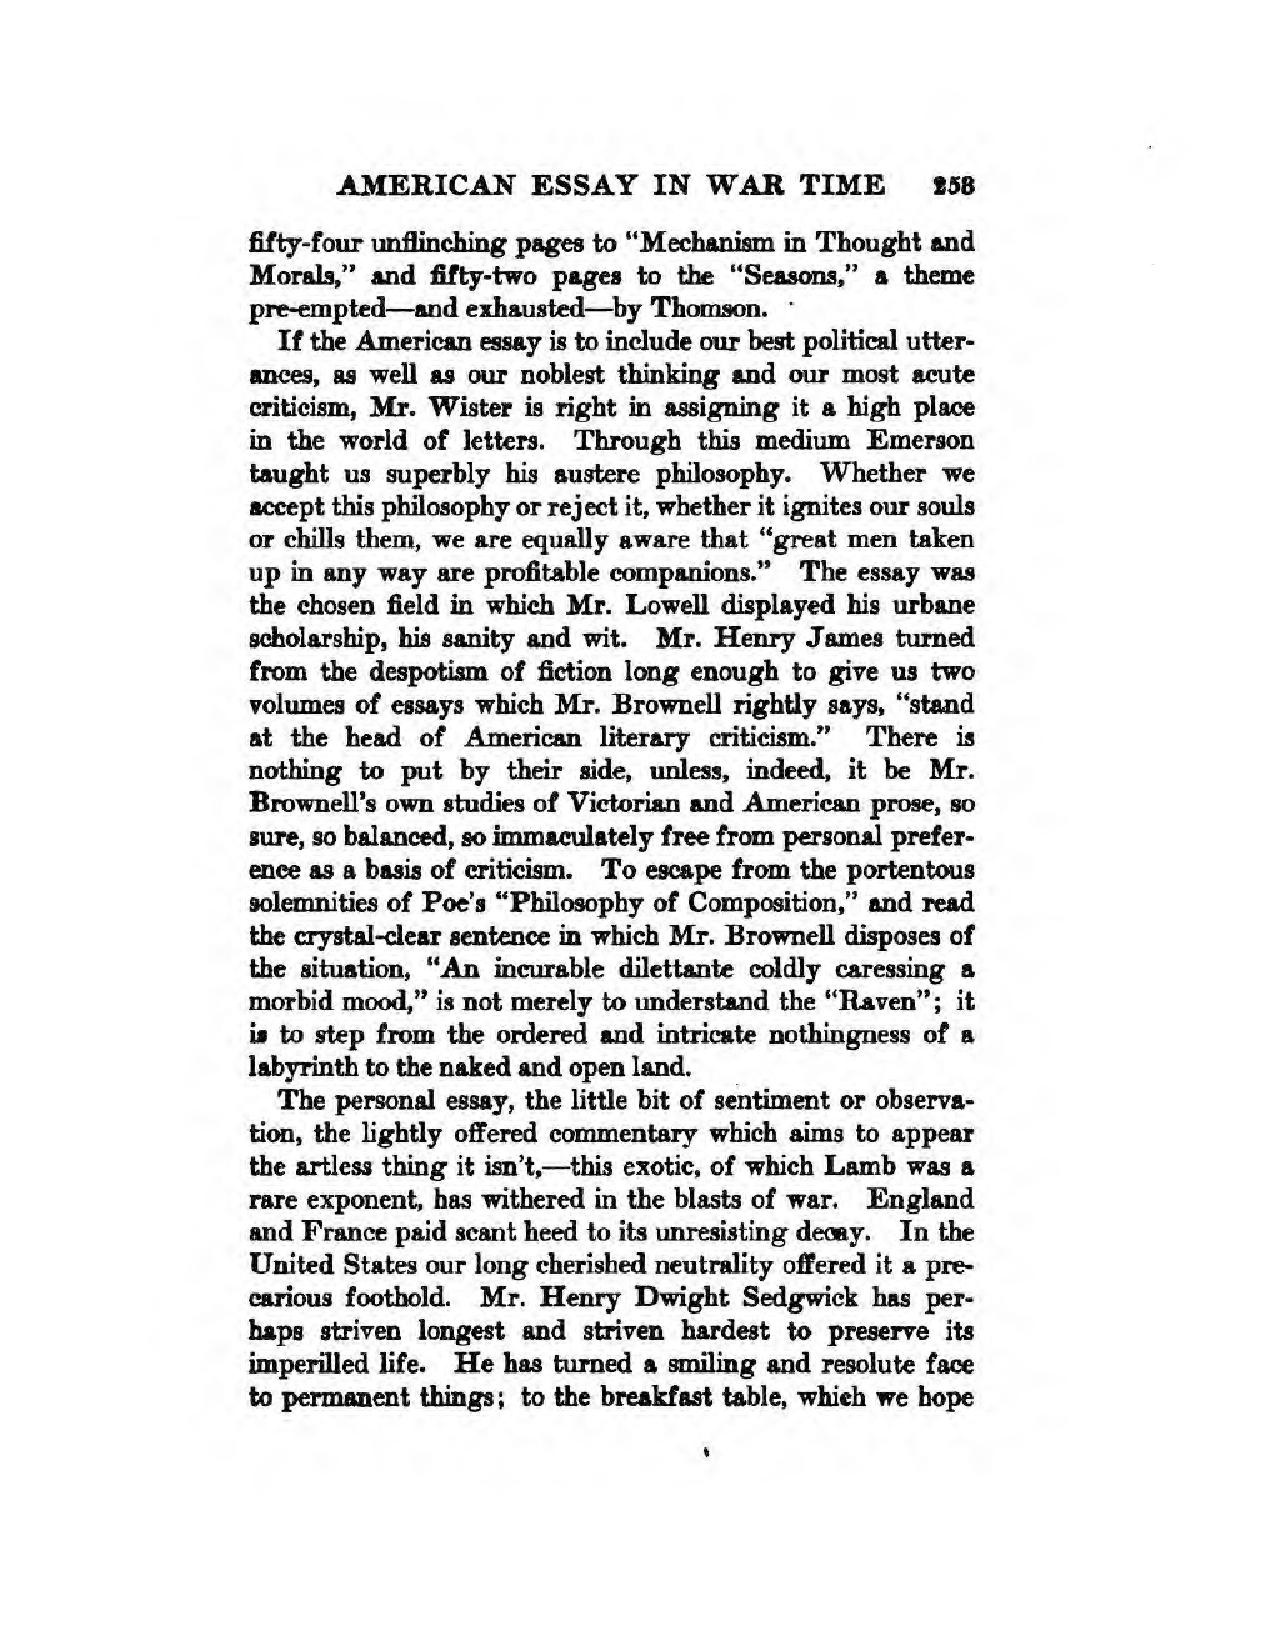 022 American Essay Example Page5 1275px The In War Time2c Agnes Repplier2c 1918 Striking Dream Scholarship Native Titles Style Full